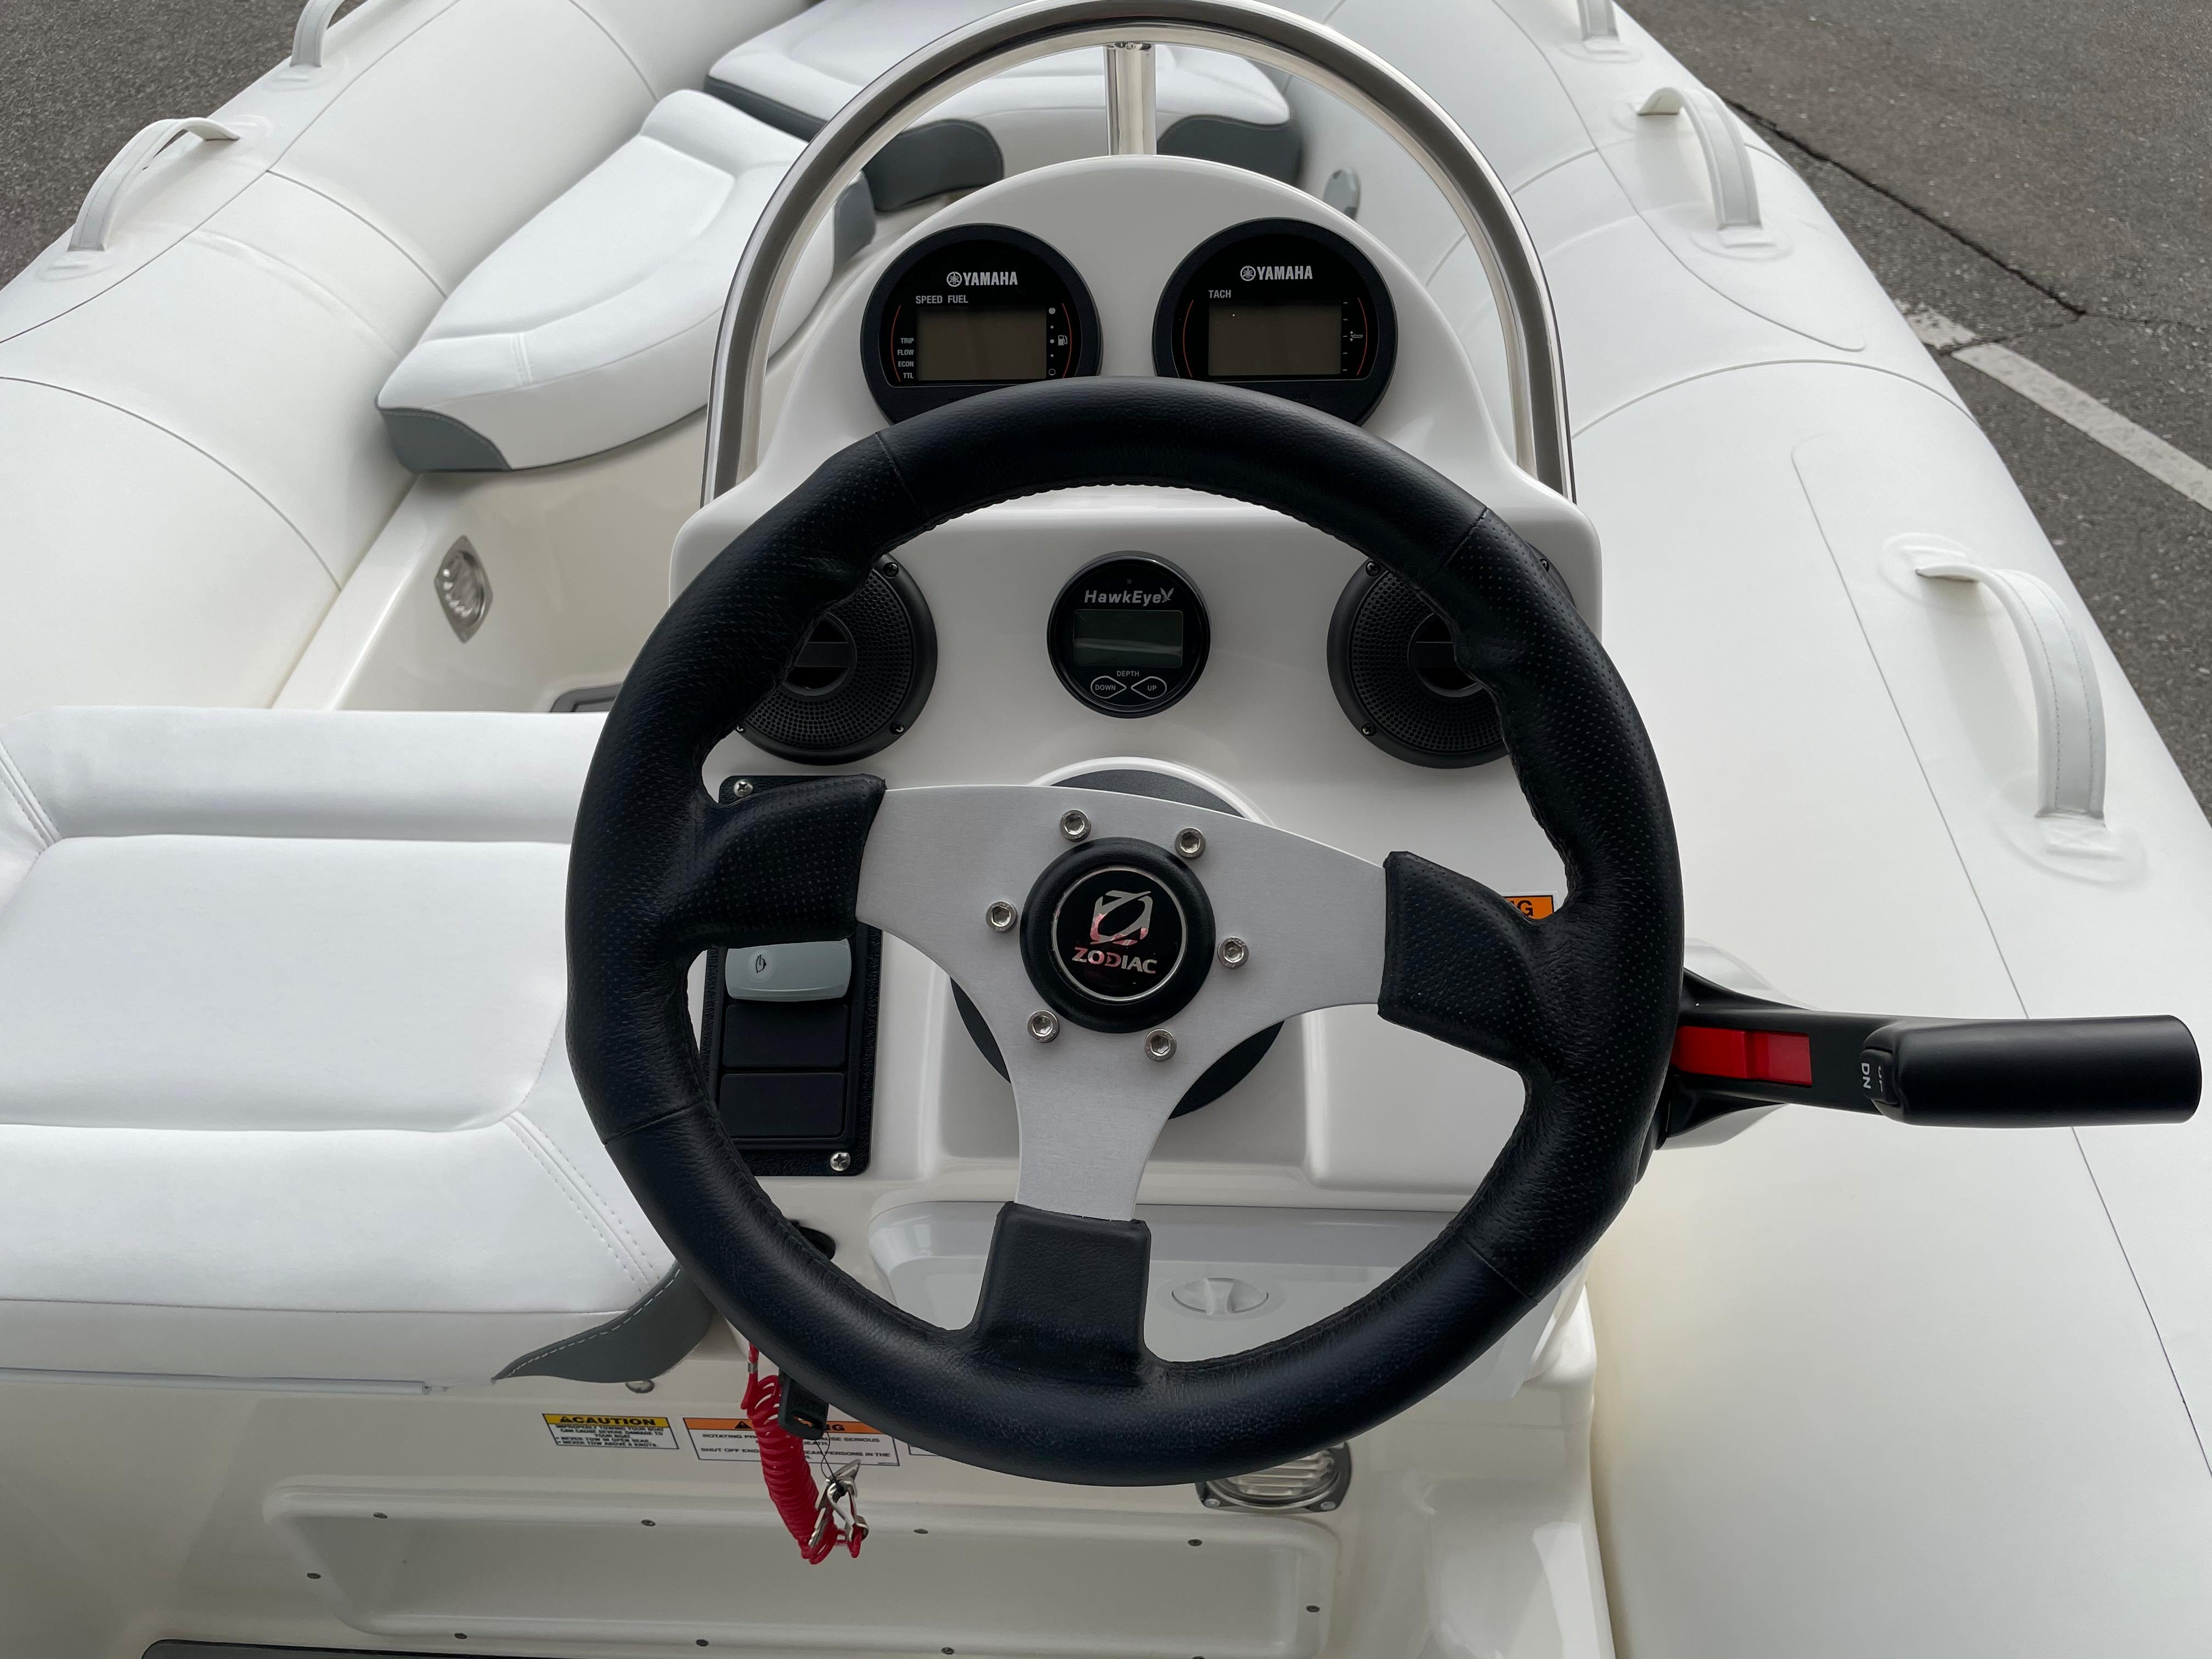 2022 Zodiac Yachtline 440 Deluxe NEO GL Edition 60hp On Order, Image 17